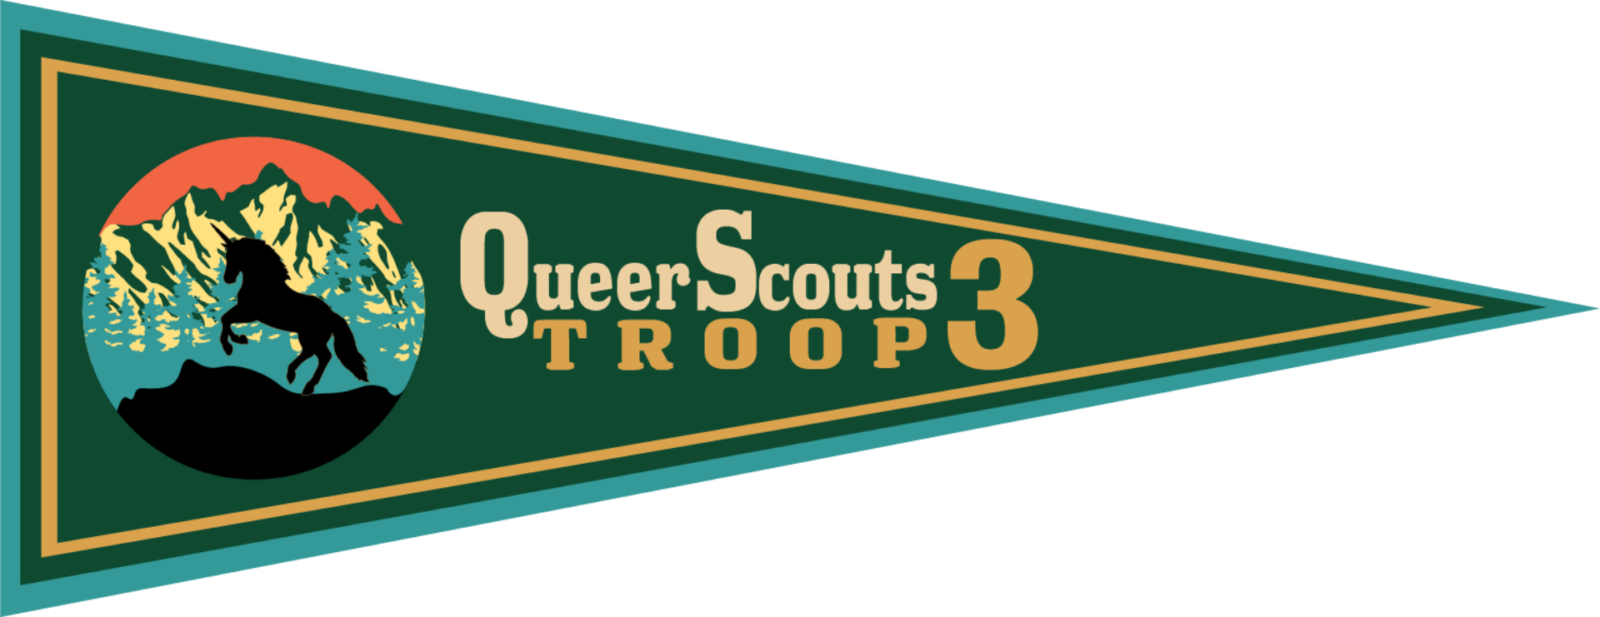 Queer Scouts Seattle